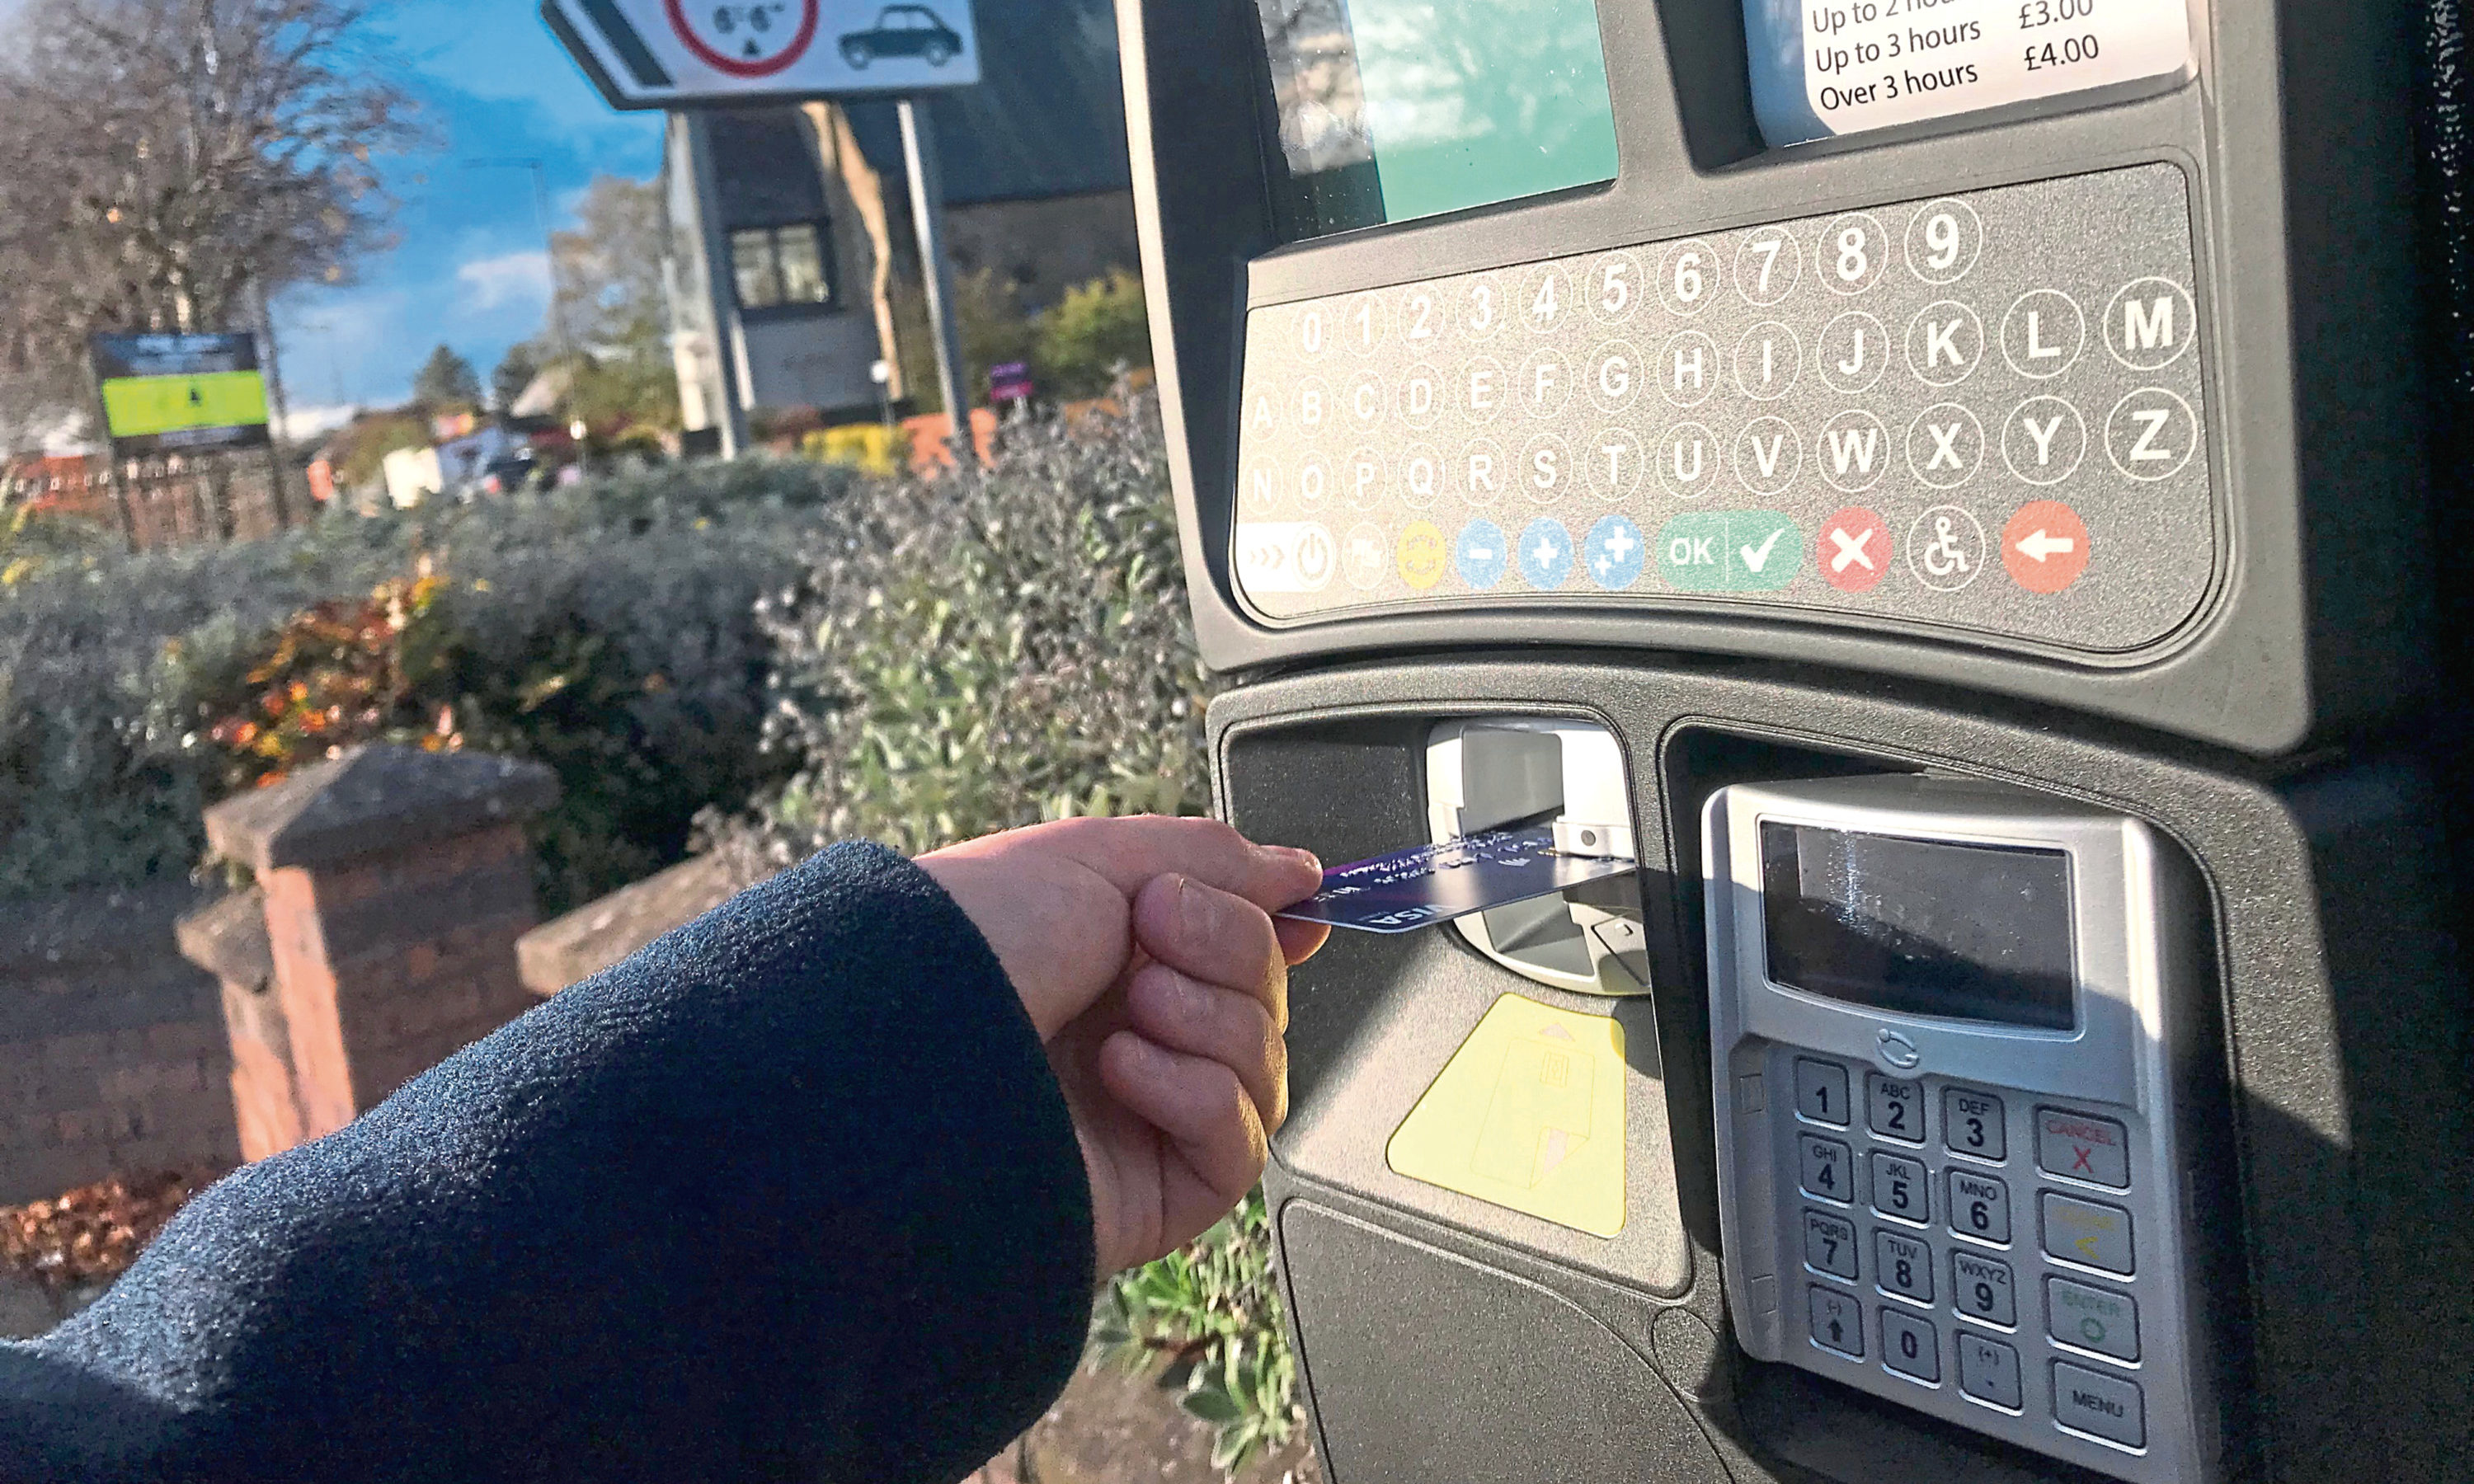 Parking machines in Angus.